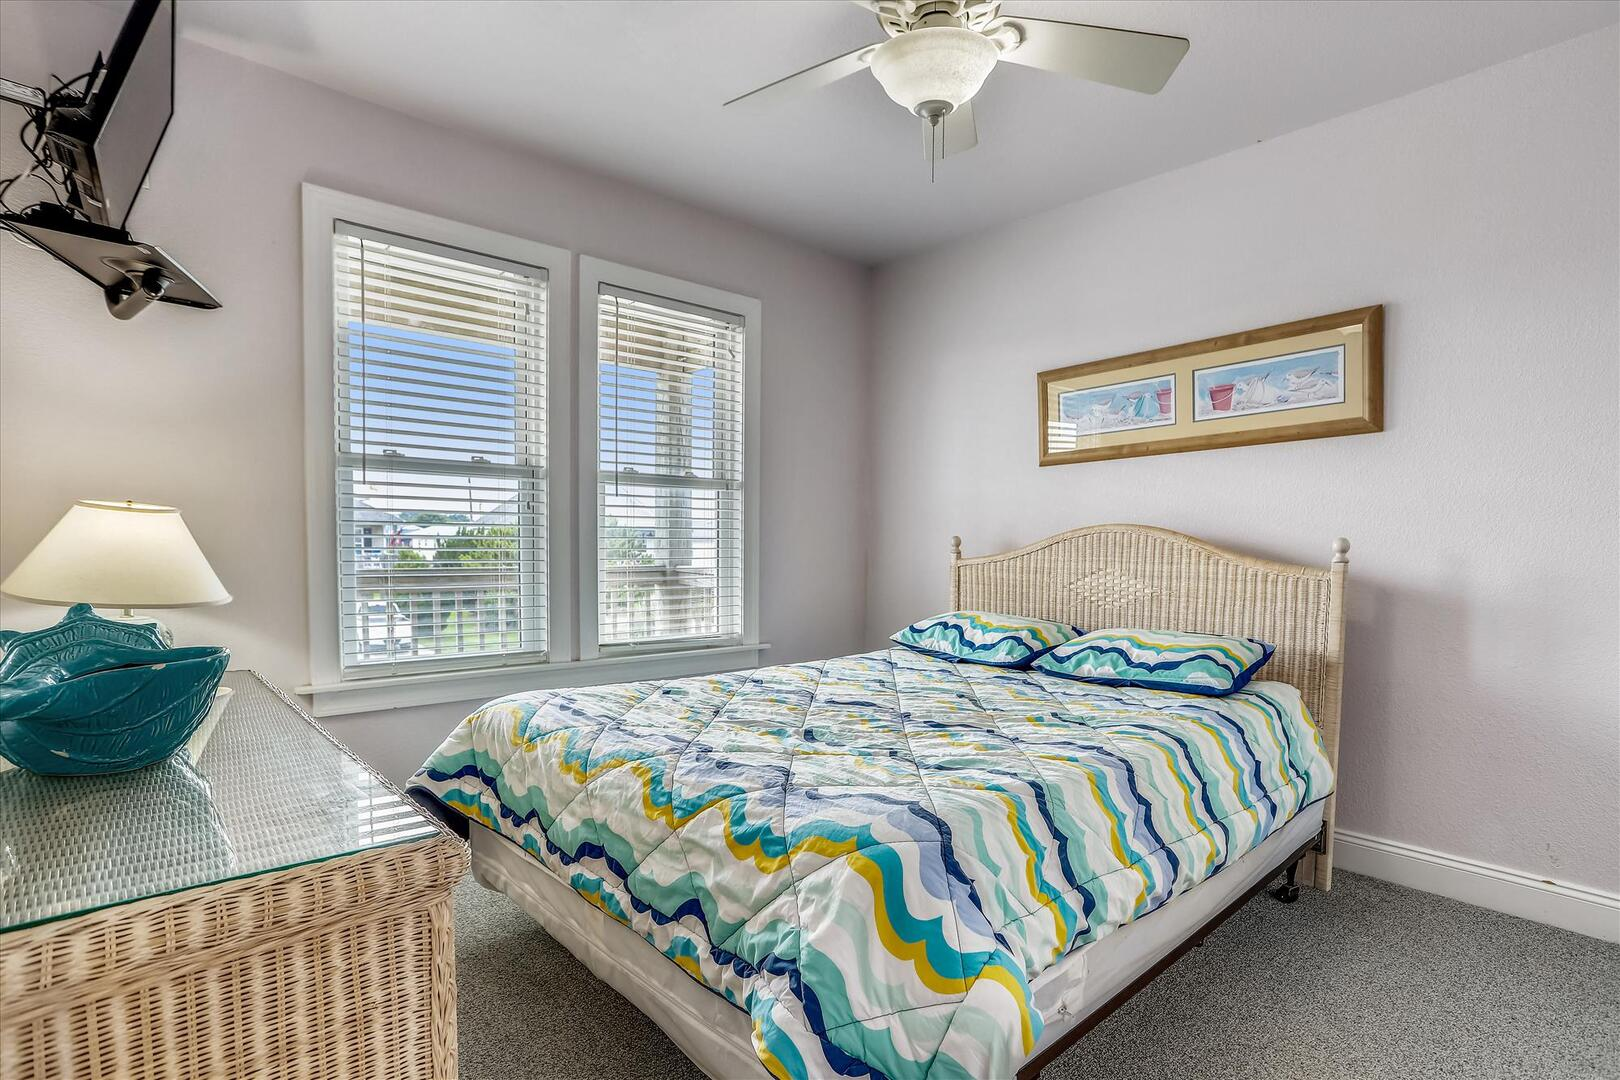 Middle Level,Bedroom,